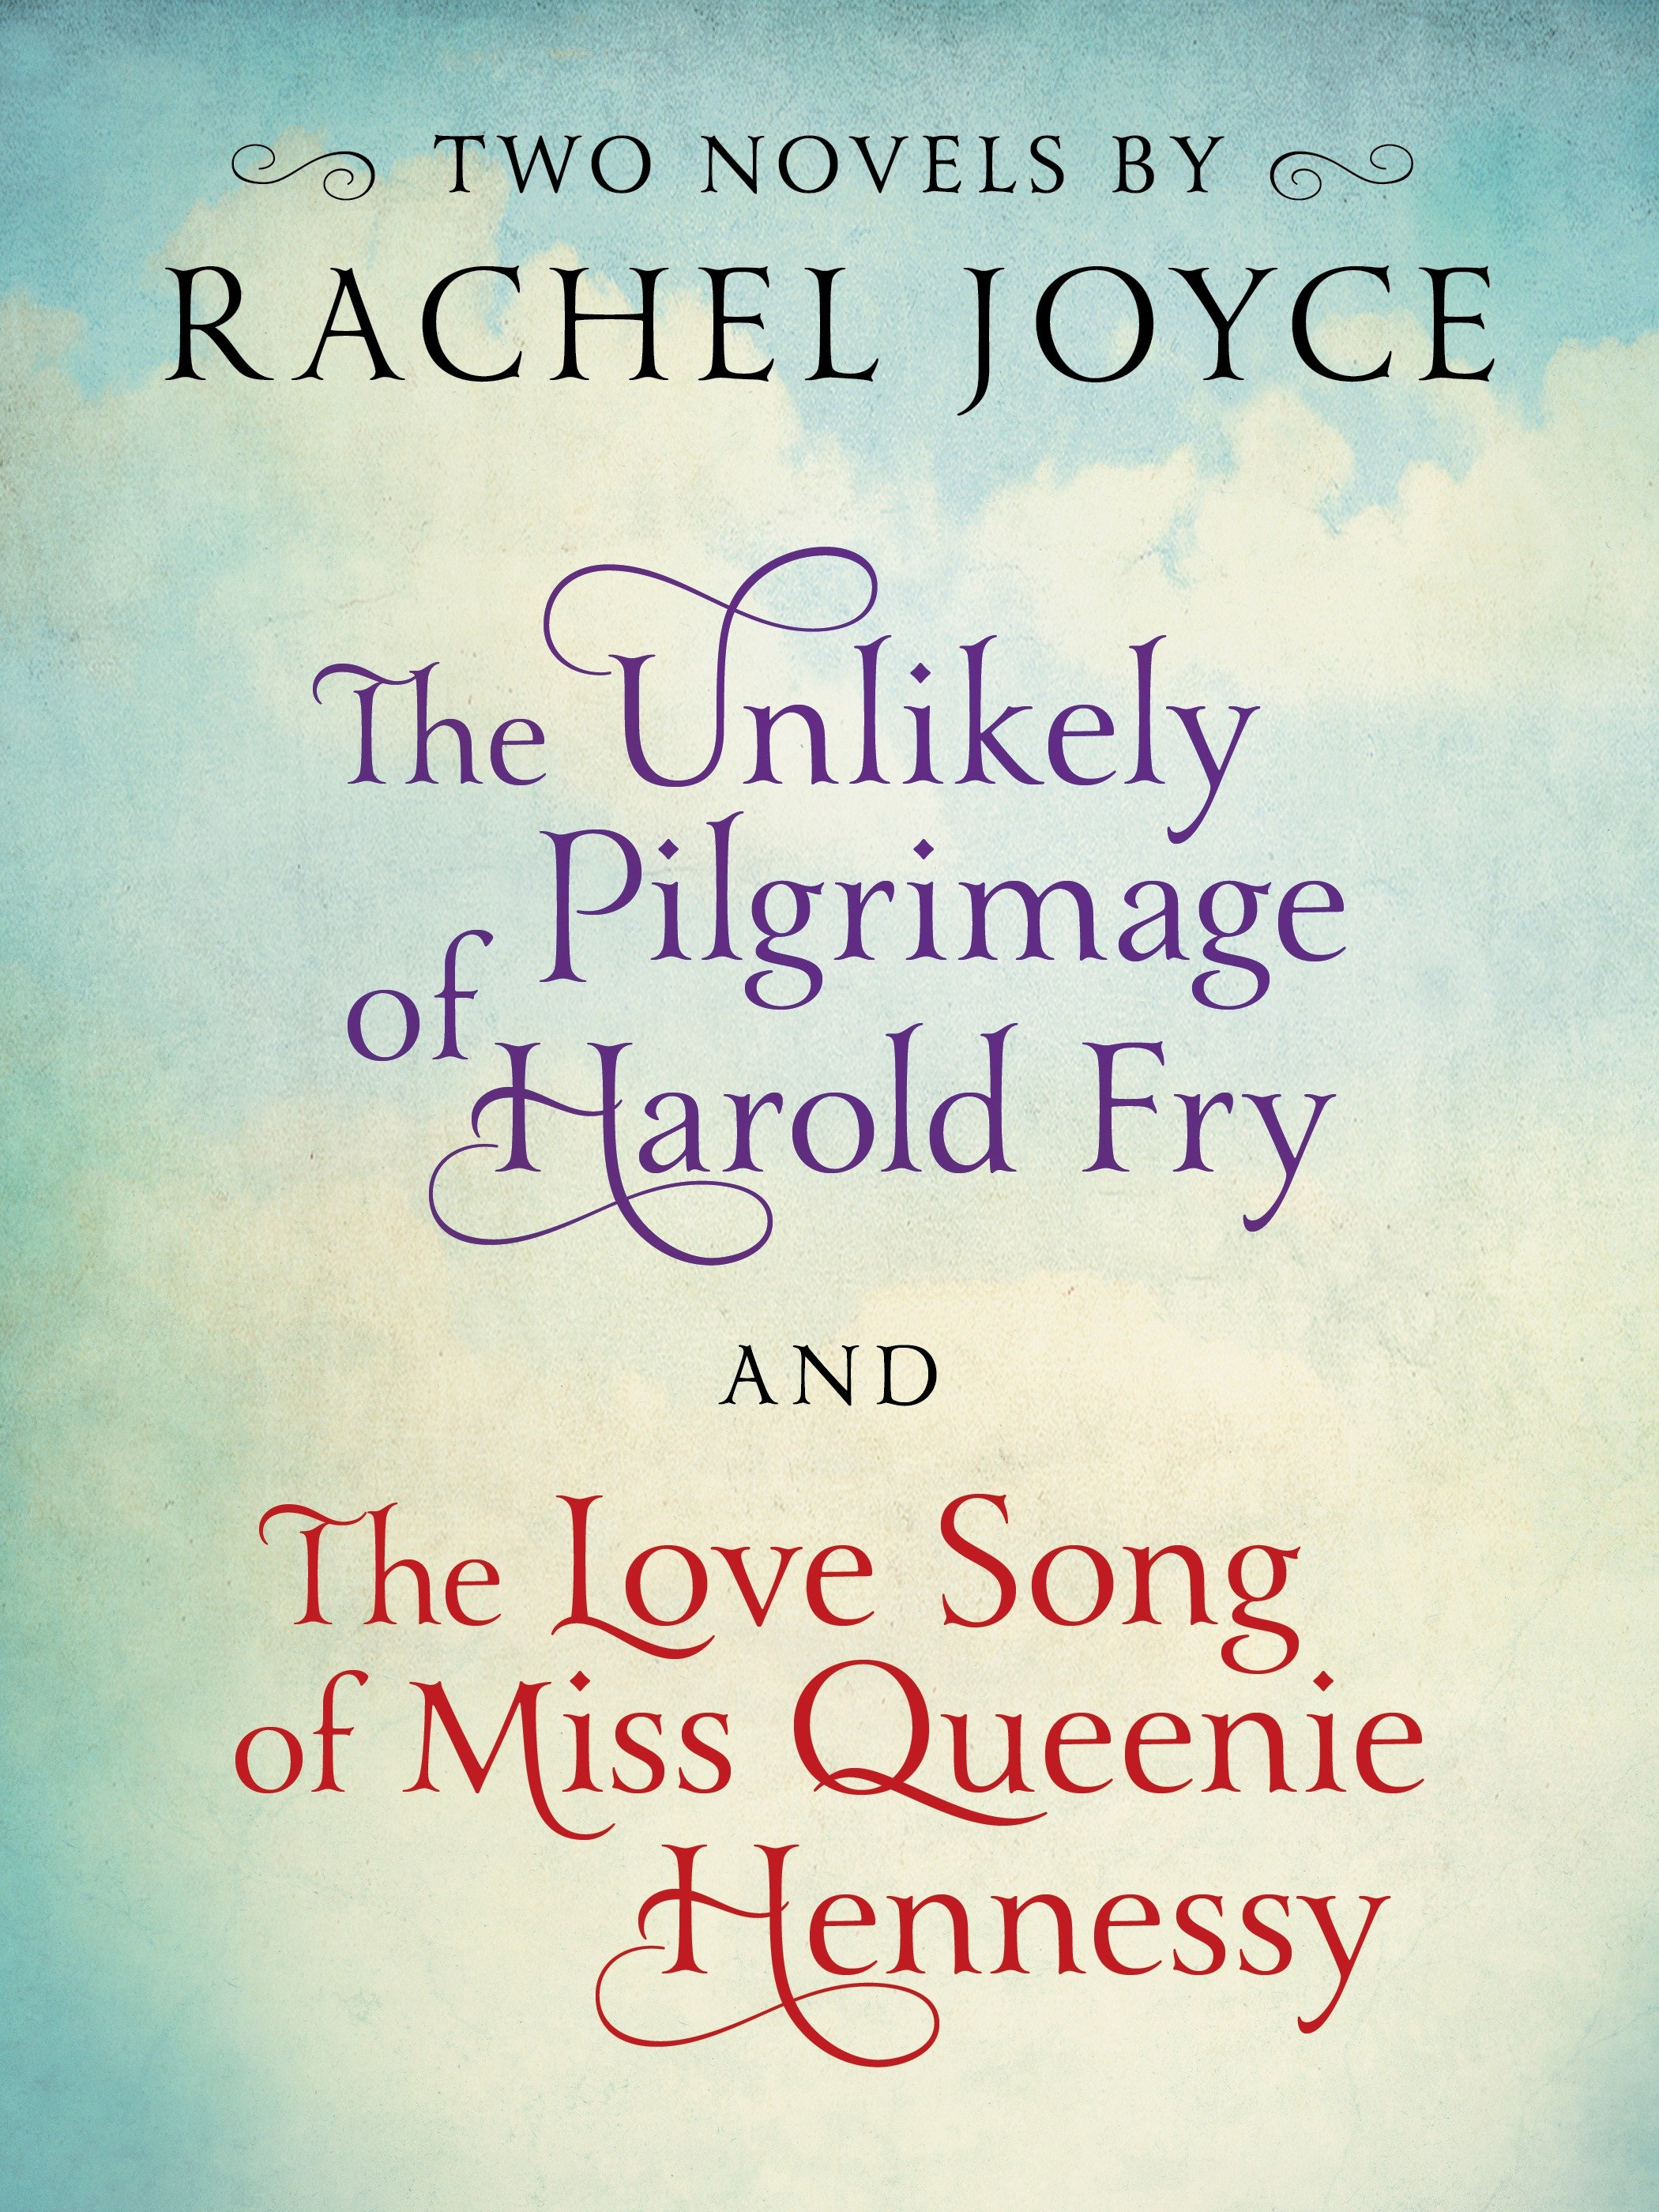 Harold Fry & Queenie: Two-Book Bundle from Rachel Joyce The Unlikely Pilgrimage of Harold Fry and The Love Song of Miss Queenie Hennessy